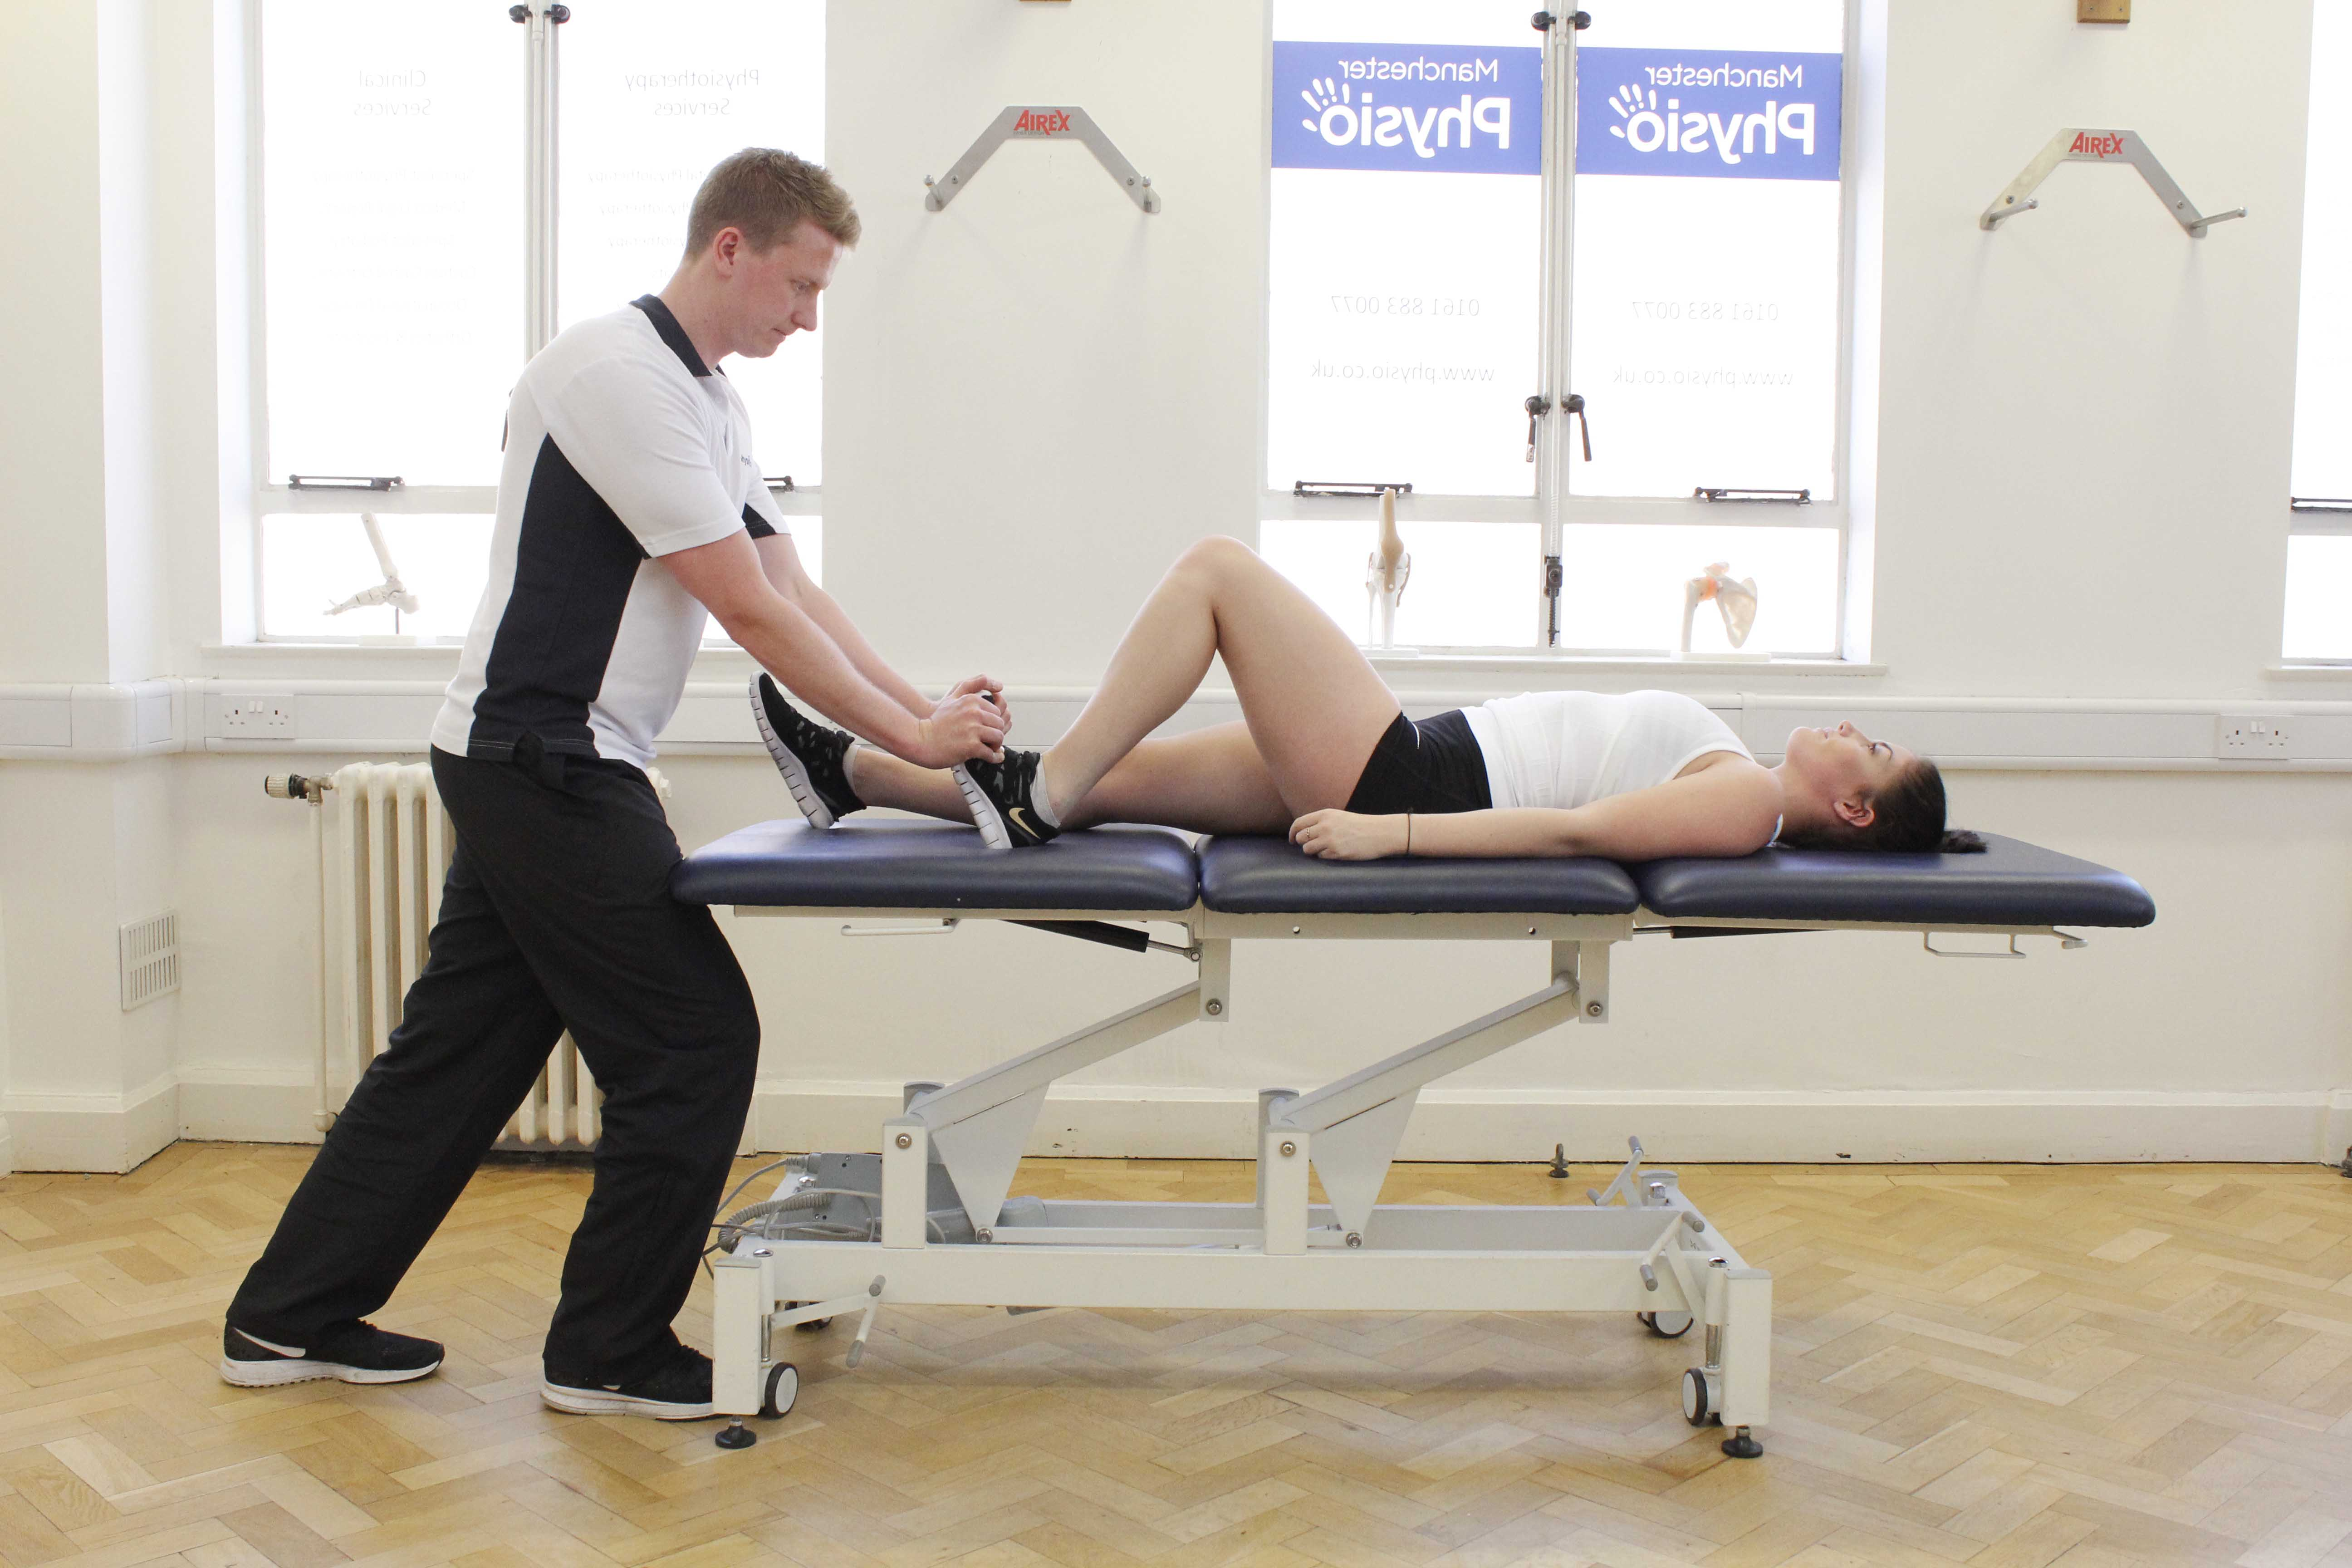 Passive stretch of the achilles tendon performed by specialist therapist